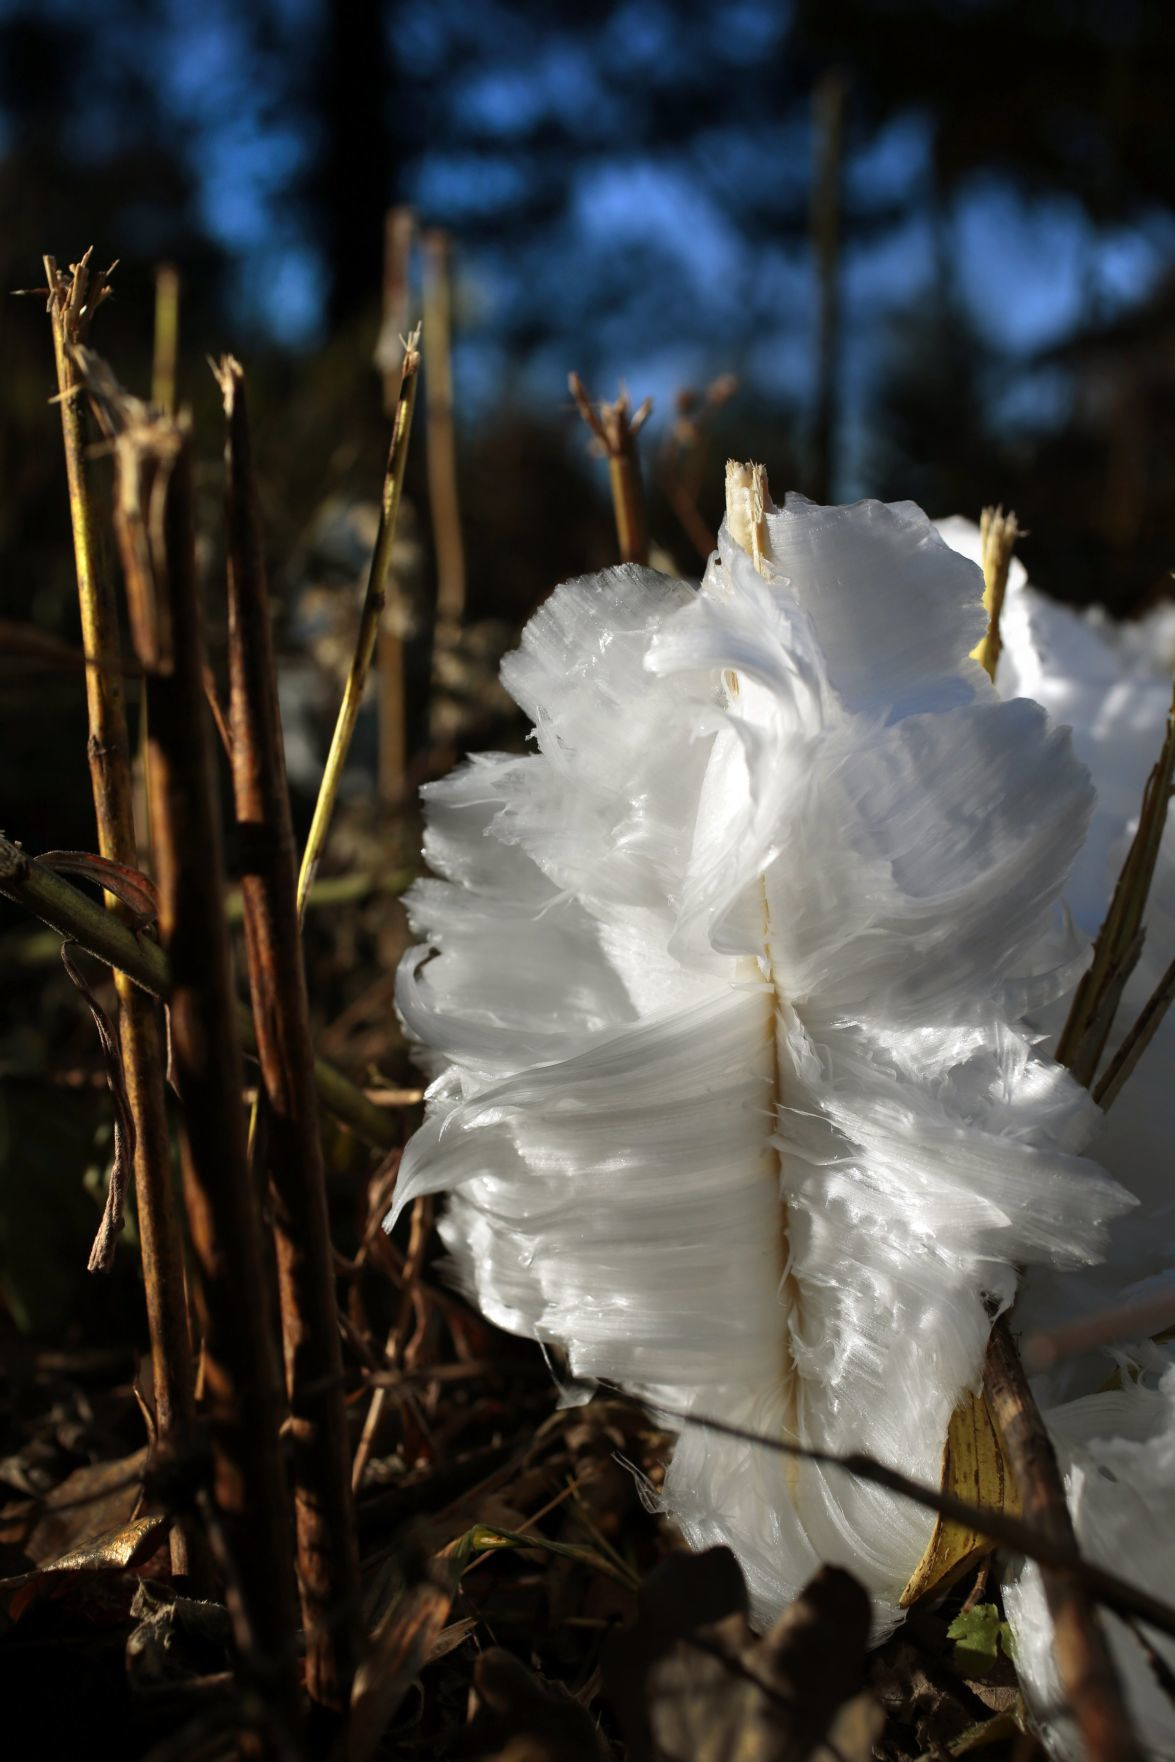 Missouri S Ephemeral Ice Flowers Emerge This Time Of Year Spot